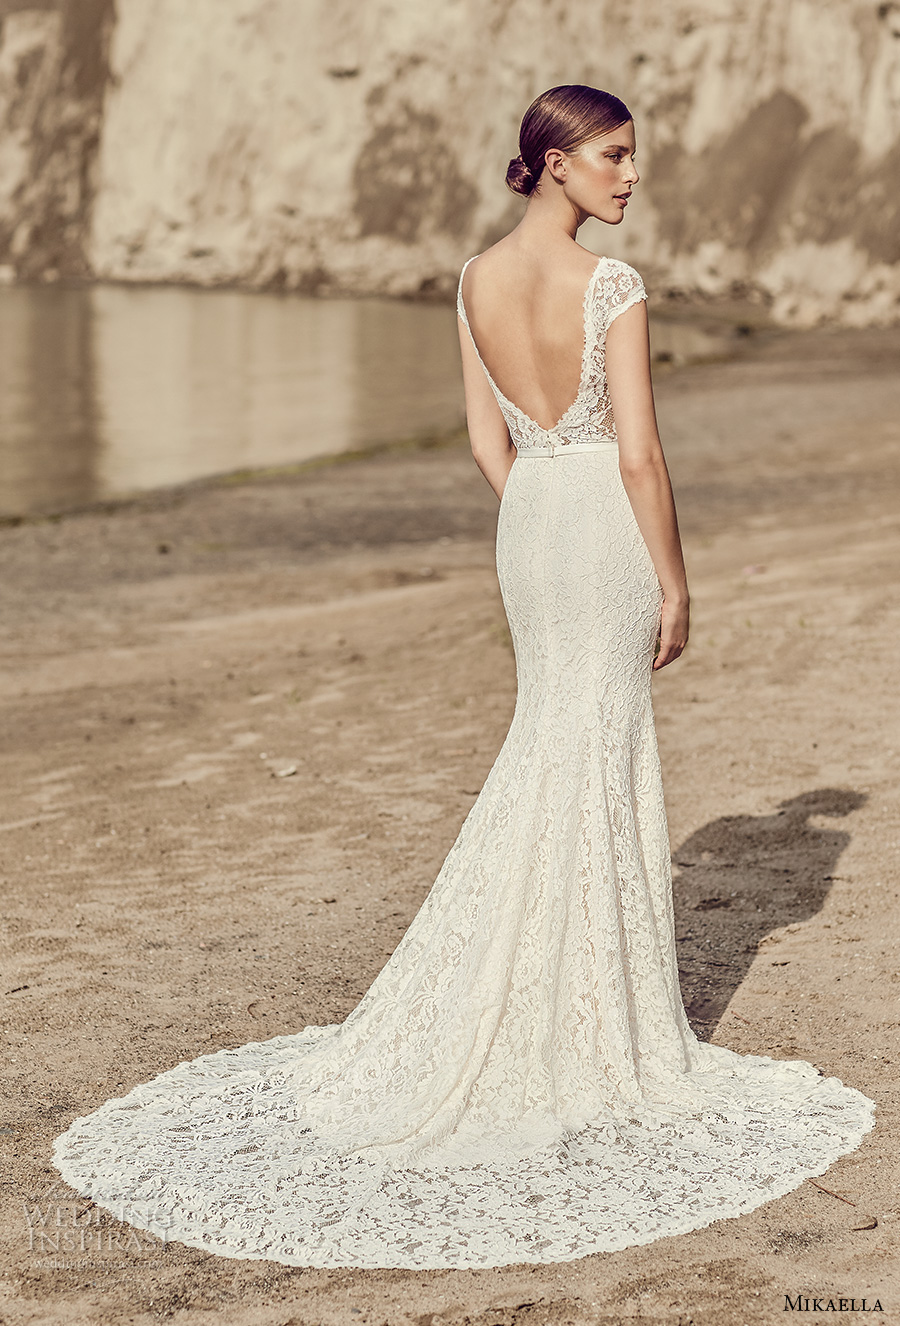 mikaella spring 2017 bridal cap sleeves plunging v neckline full embroidered middle slit elegant sheath fit flare wedding dress open low back chapel train (2116) bv